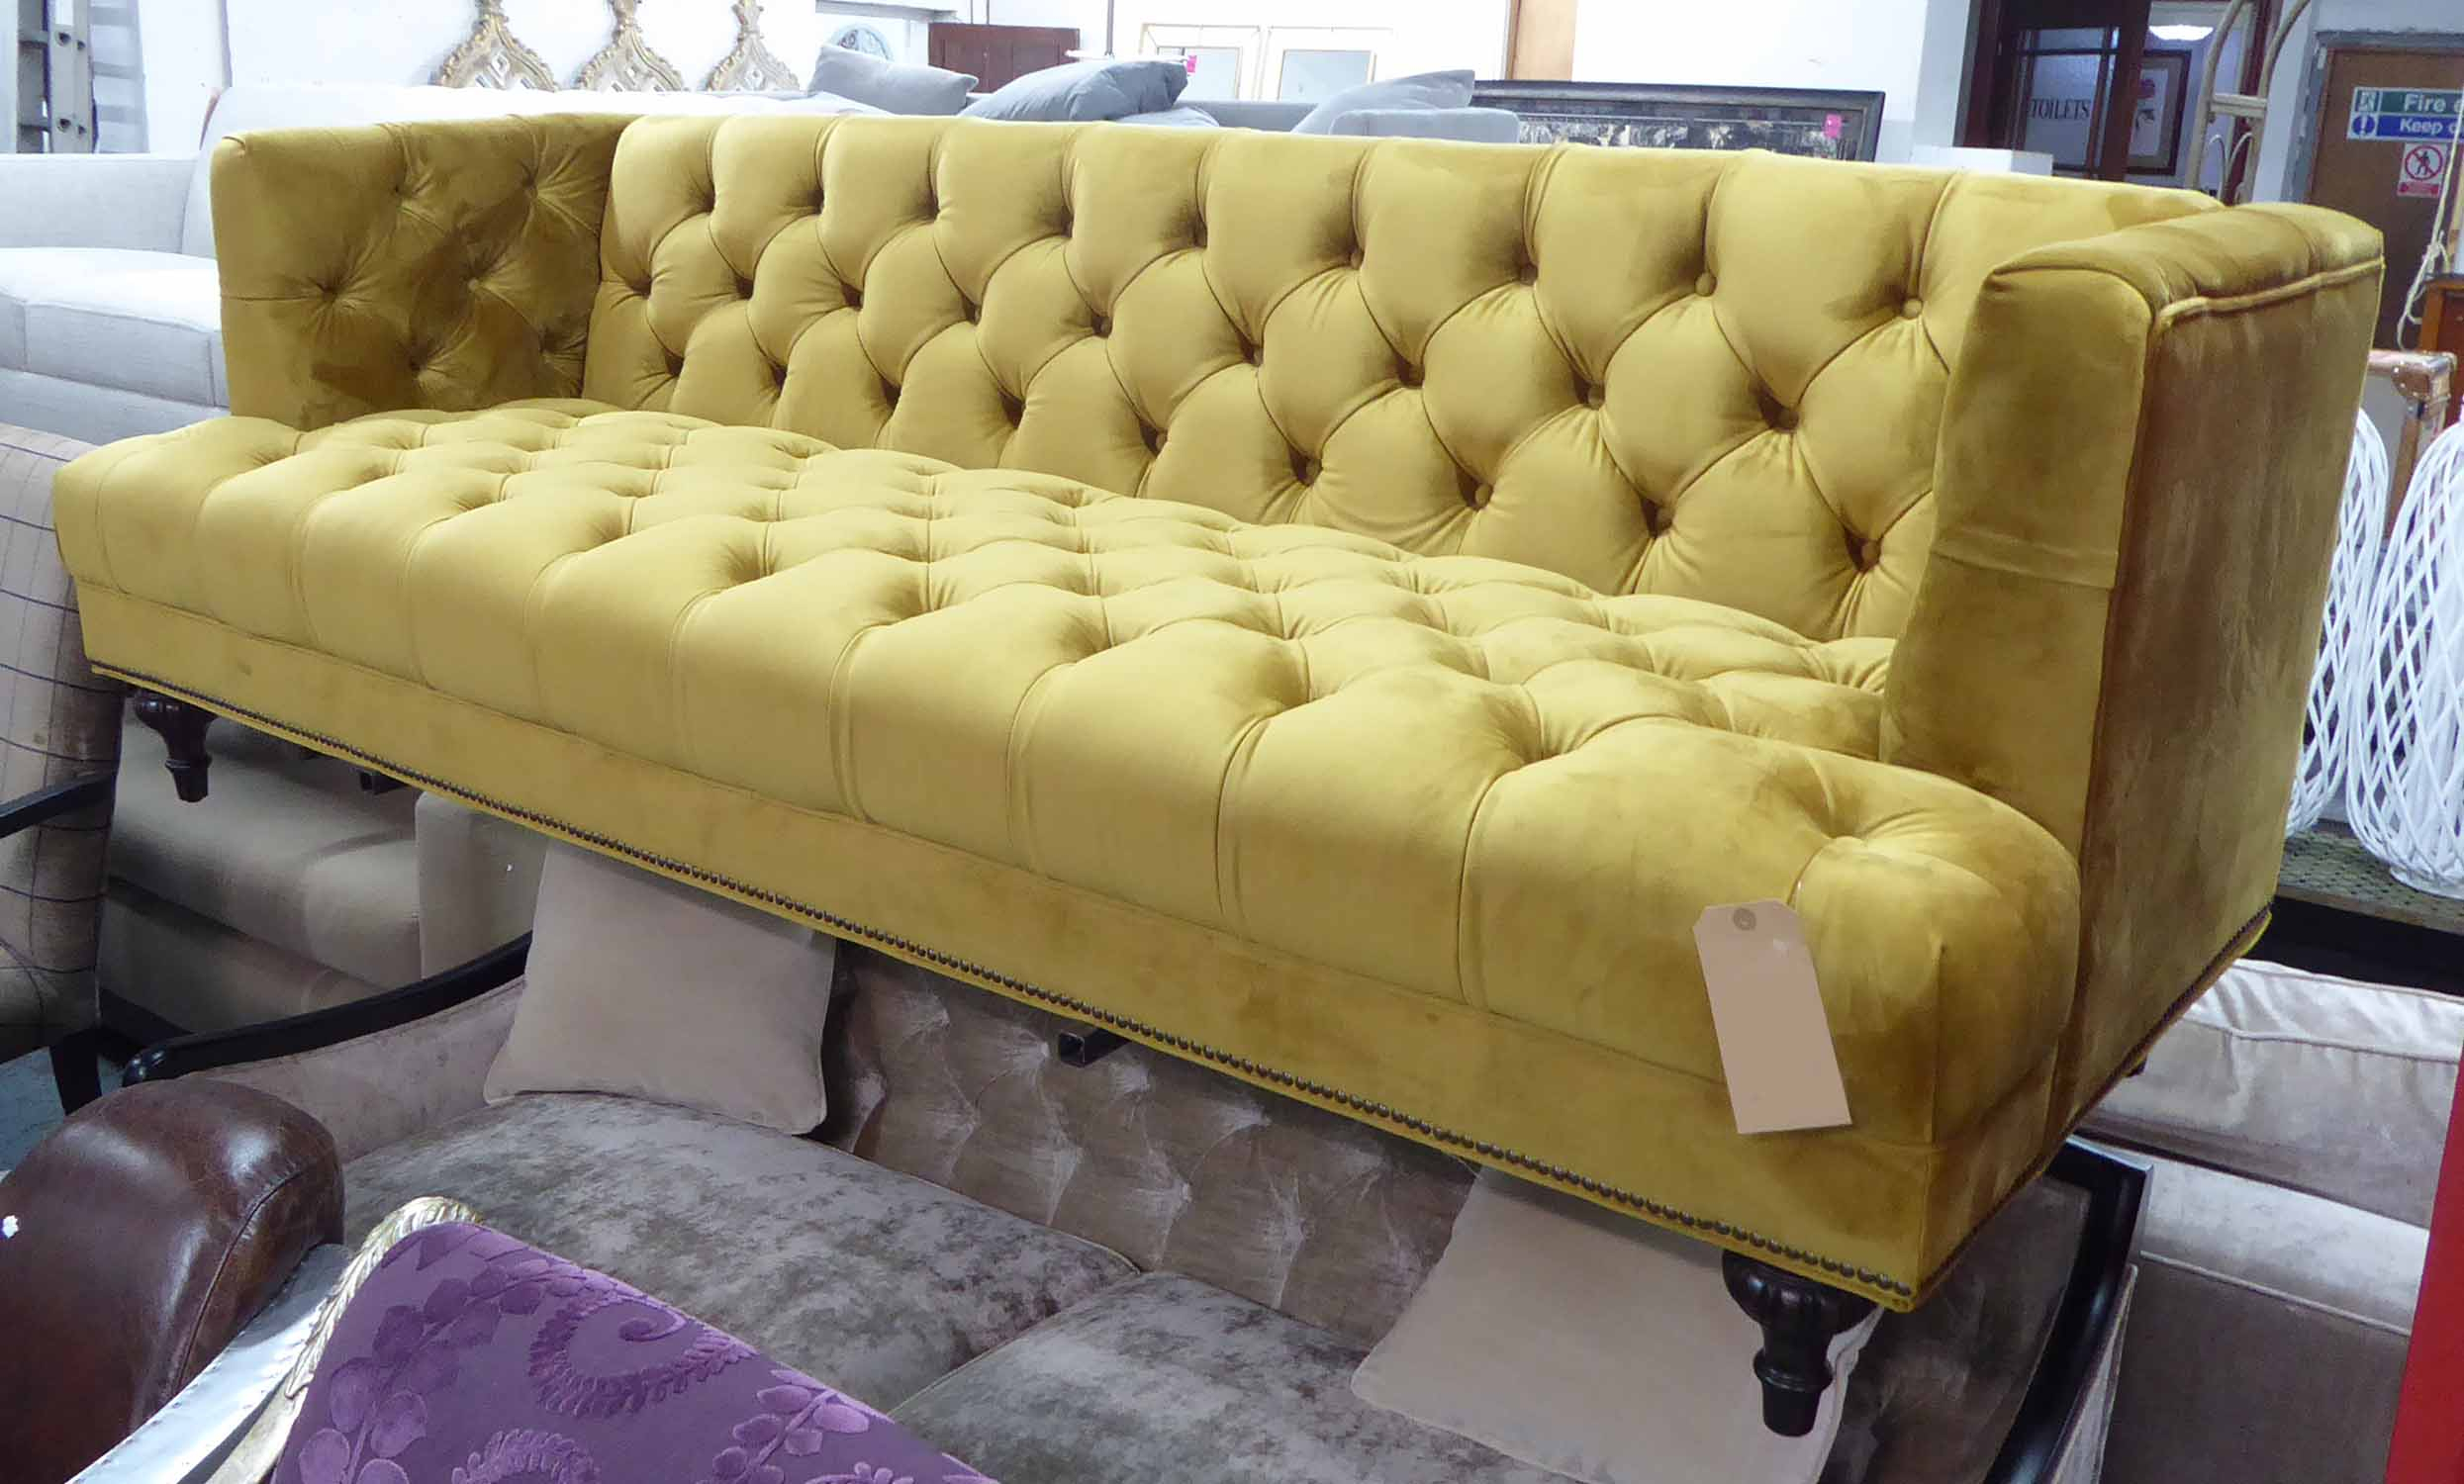 Artsome For Coach House Sofa, Mustard Buttoned Finish In French Seamed Sectional Sofas Oblong Mustard (View 4 of 15)